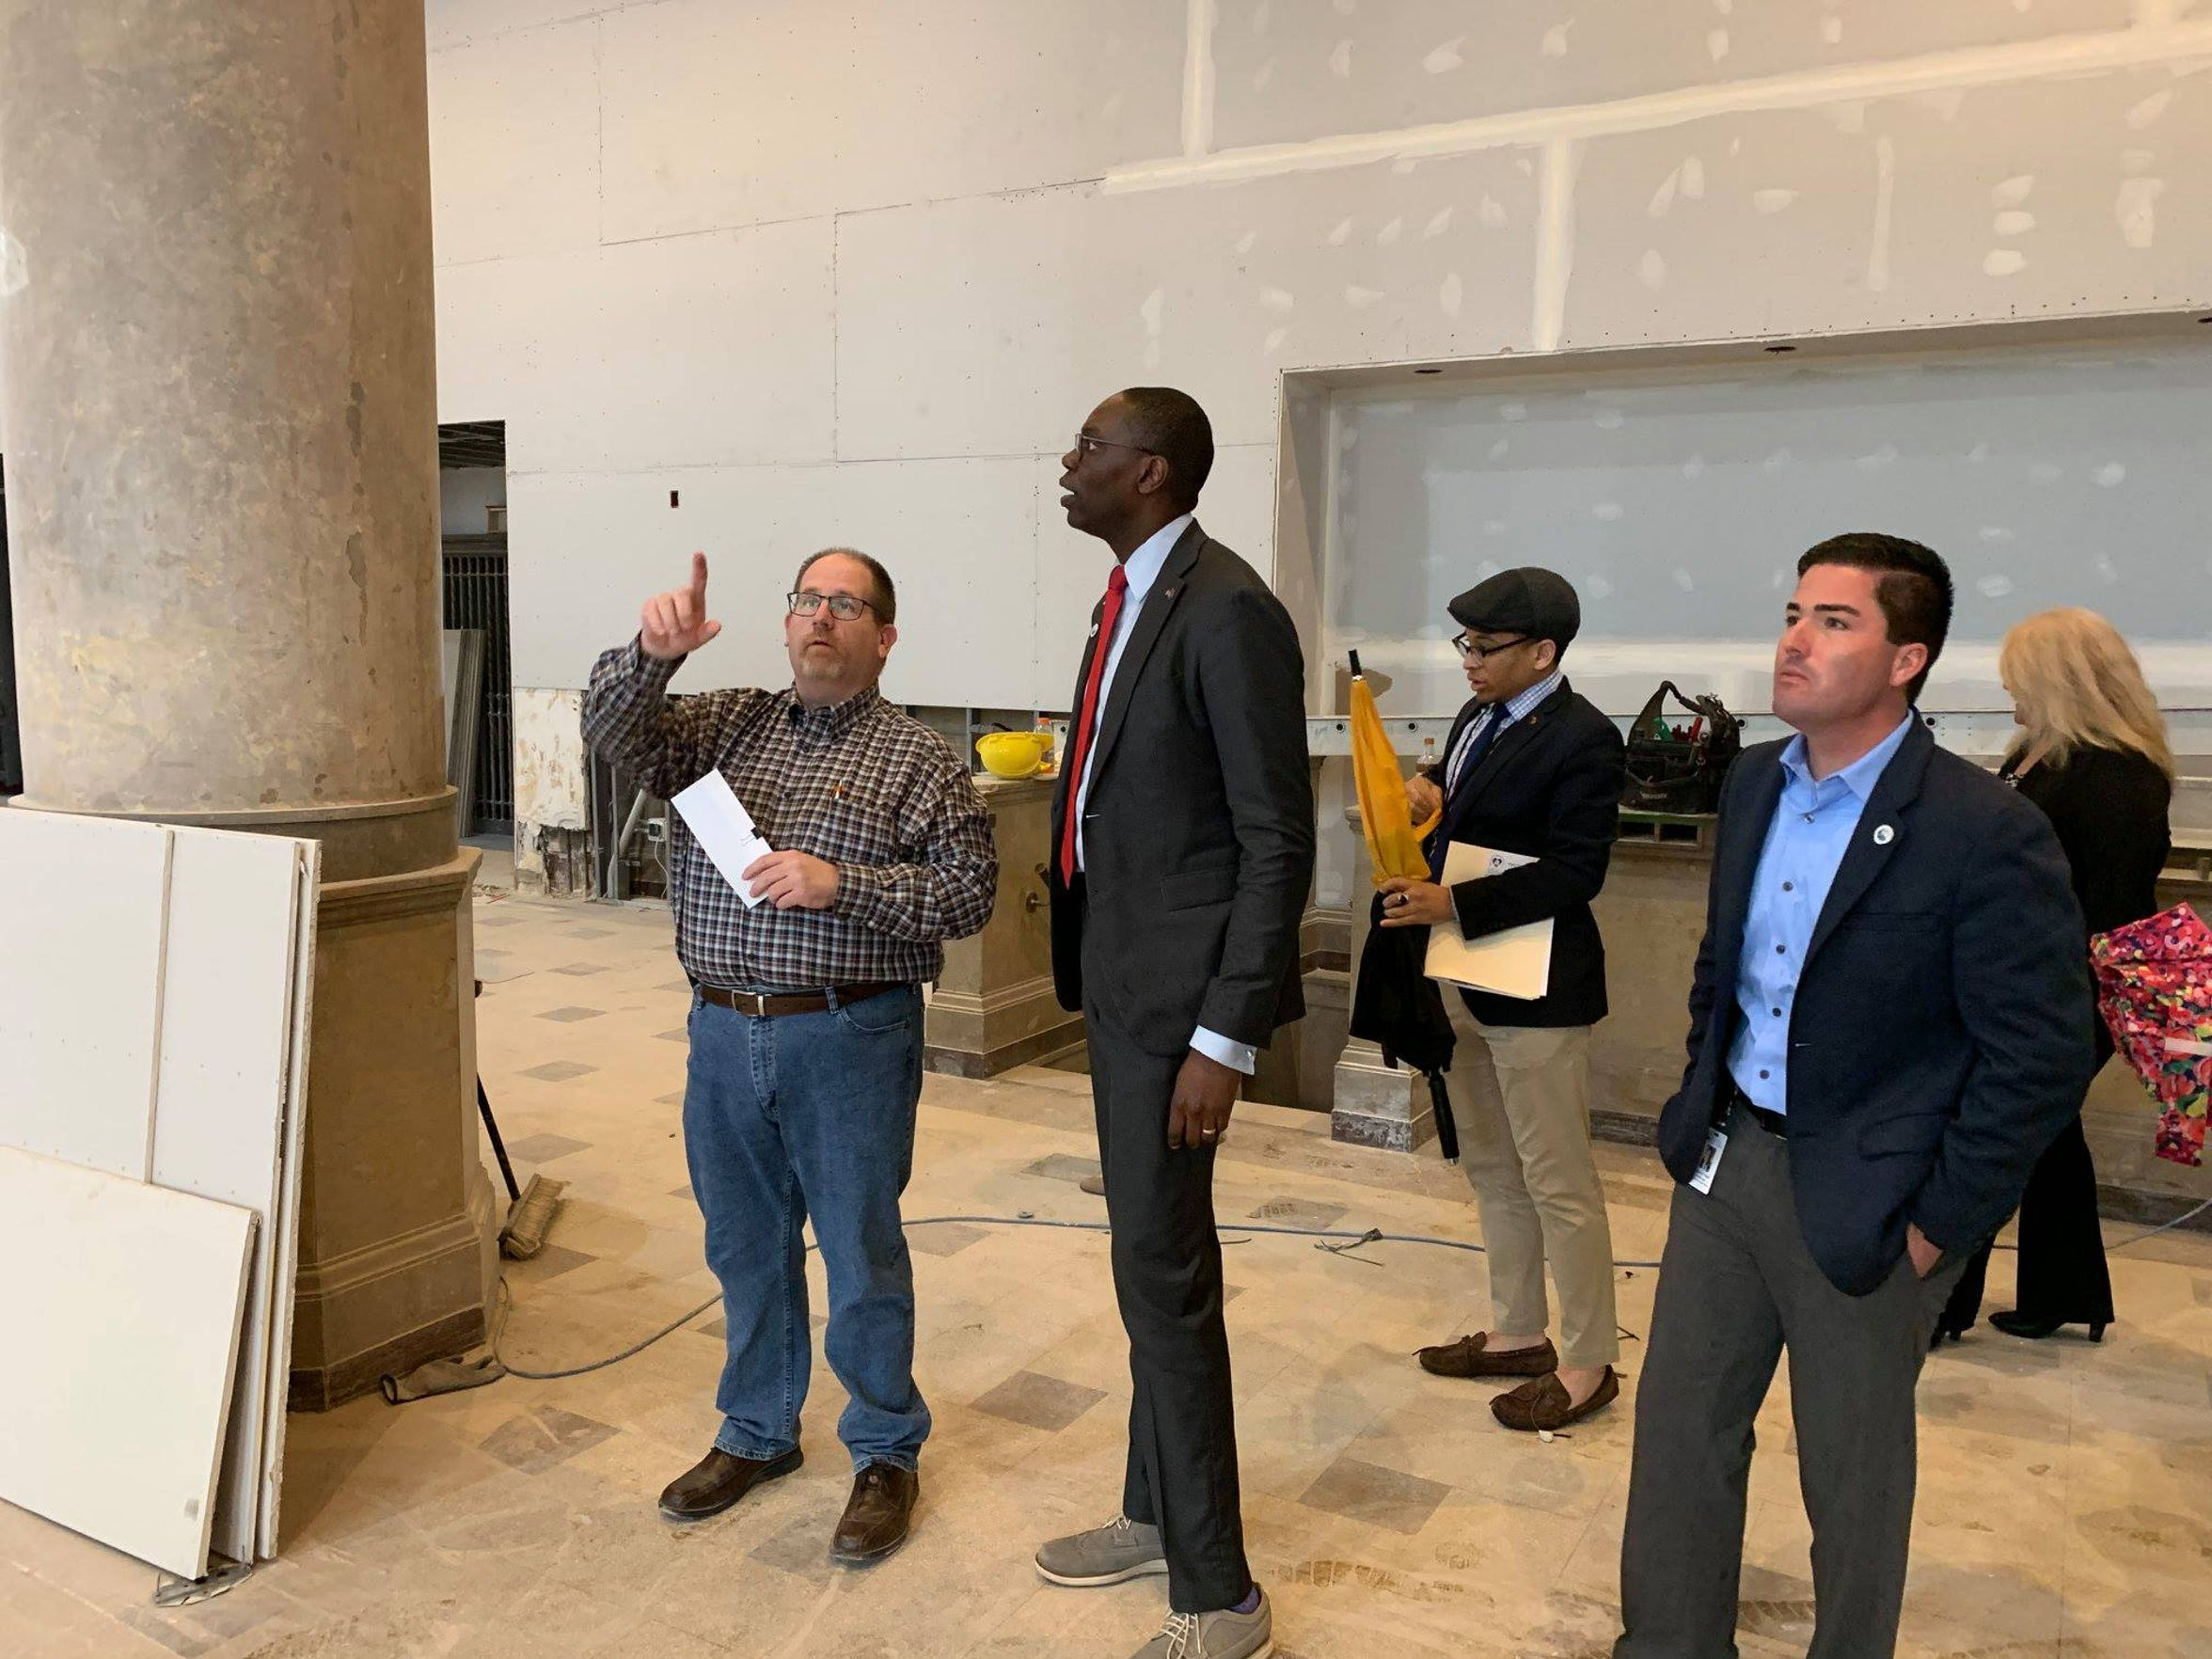 Scott Beedon, left, points to areas around the developing ballroom at the CityFlats Hotel to Lt. Gov. Garlin Gilchrist on Friday, April 12, 2019. Port Huron City Manager James Freed, right,  posted the photo to share Gilchrist's visit on social media. The ballroom, particularly, is being kept close to the vest by development officials until after it debuts at a May 10 event.